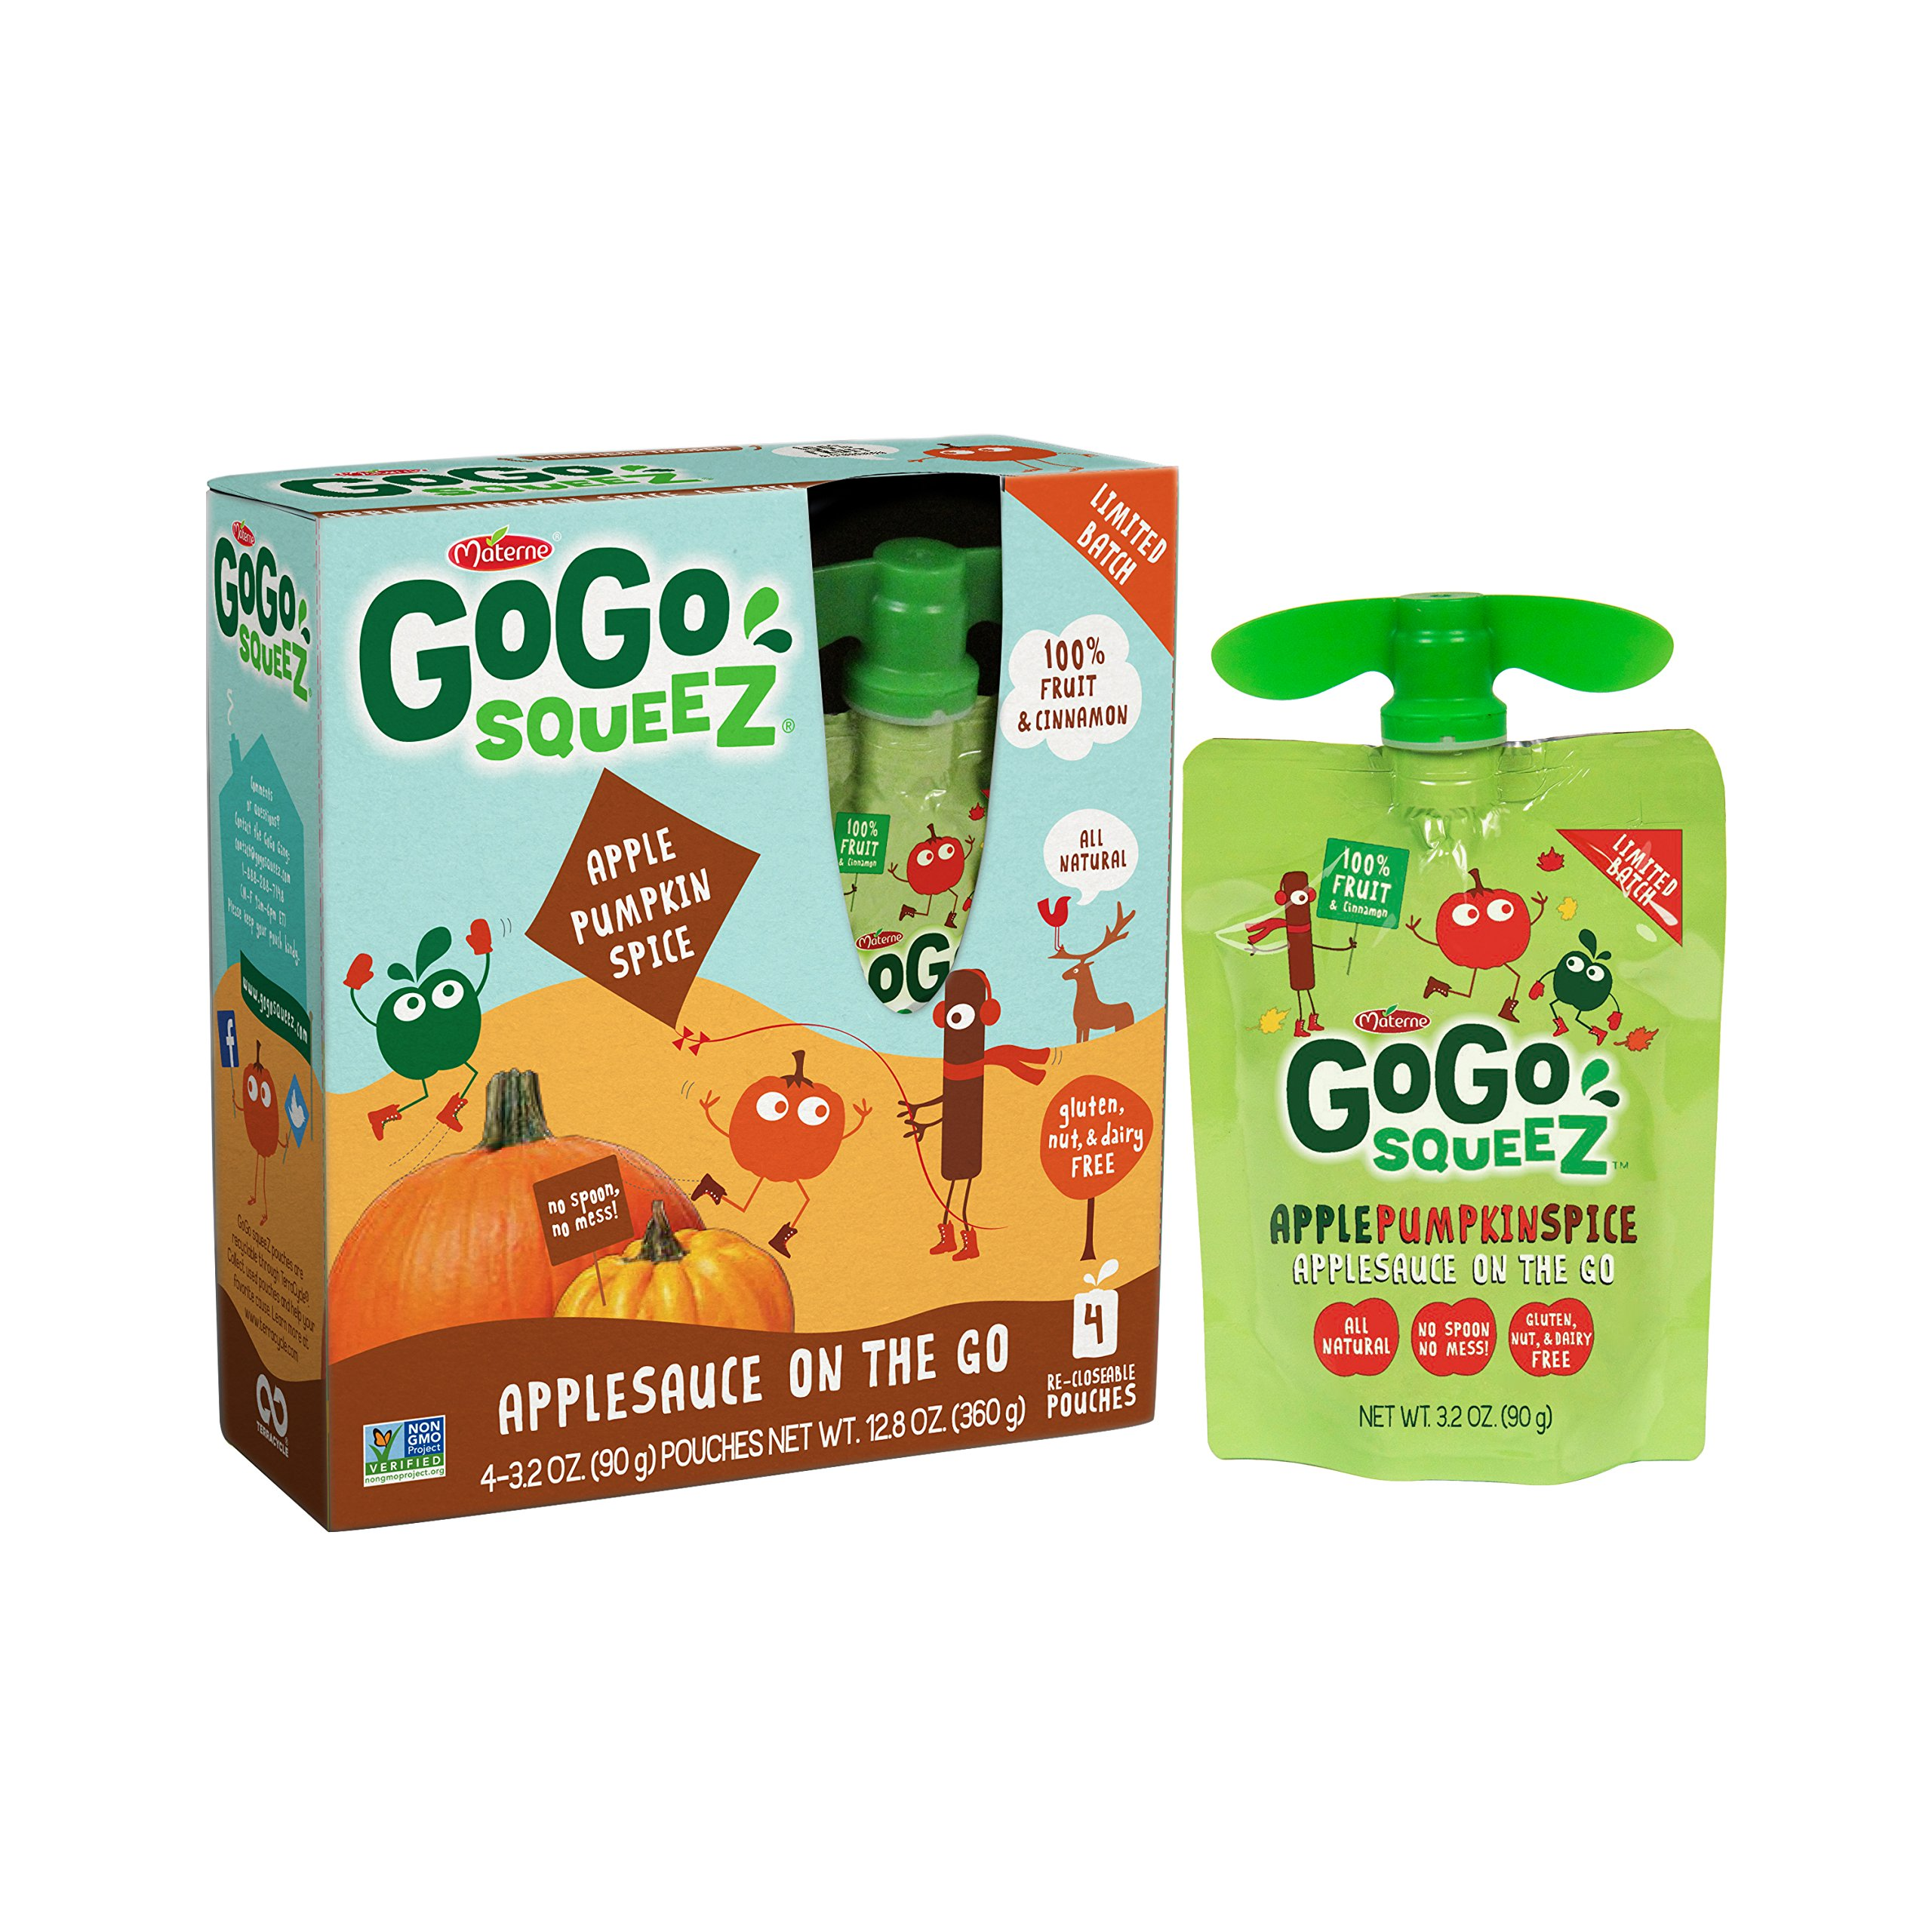 GoGo squeeZ Applesauce on the Go, Apple Pumpkin Spice, 3.2 Ounce Portable BPA-Free Pouches, Gluten-Free, 4 Total Pouches by GoGo SqueeZ